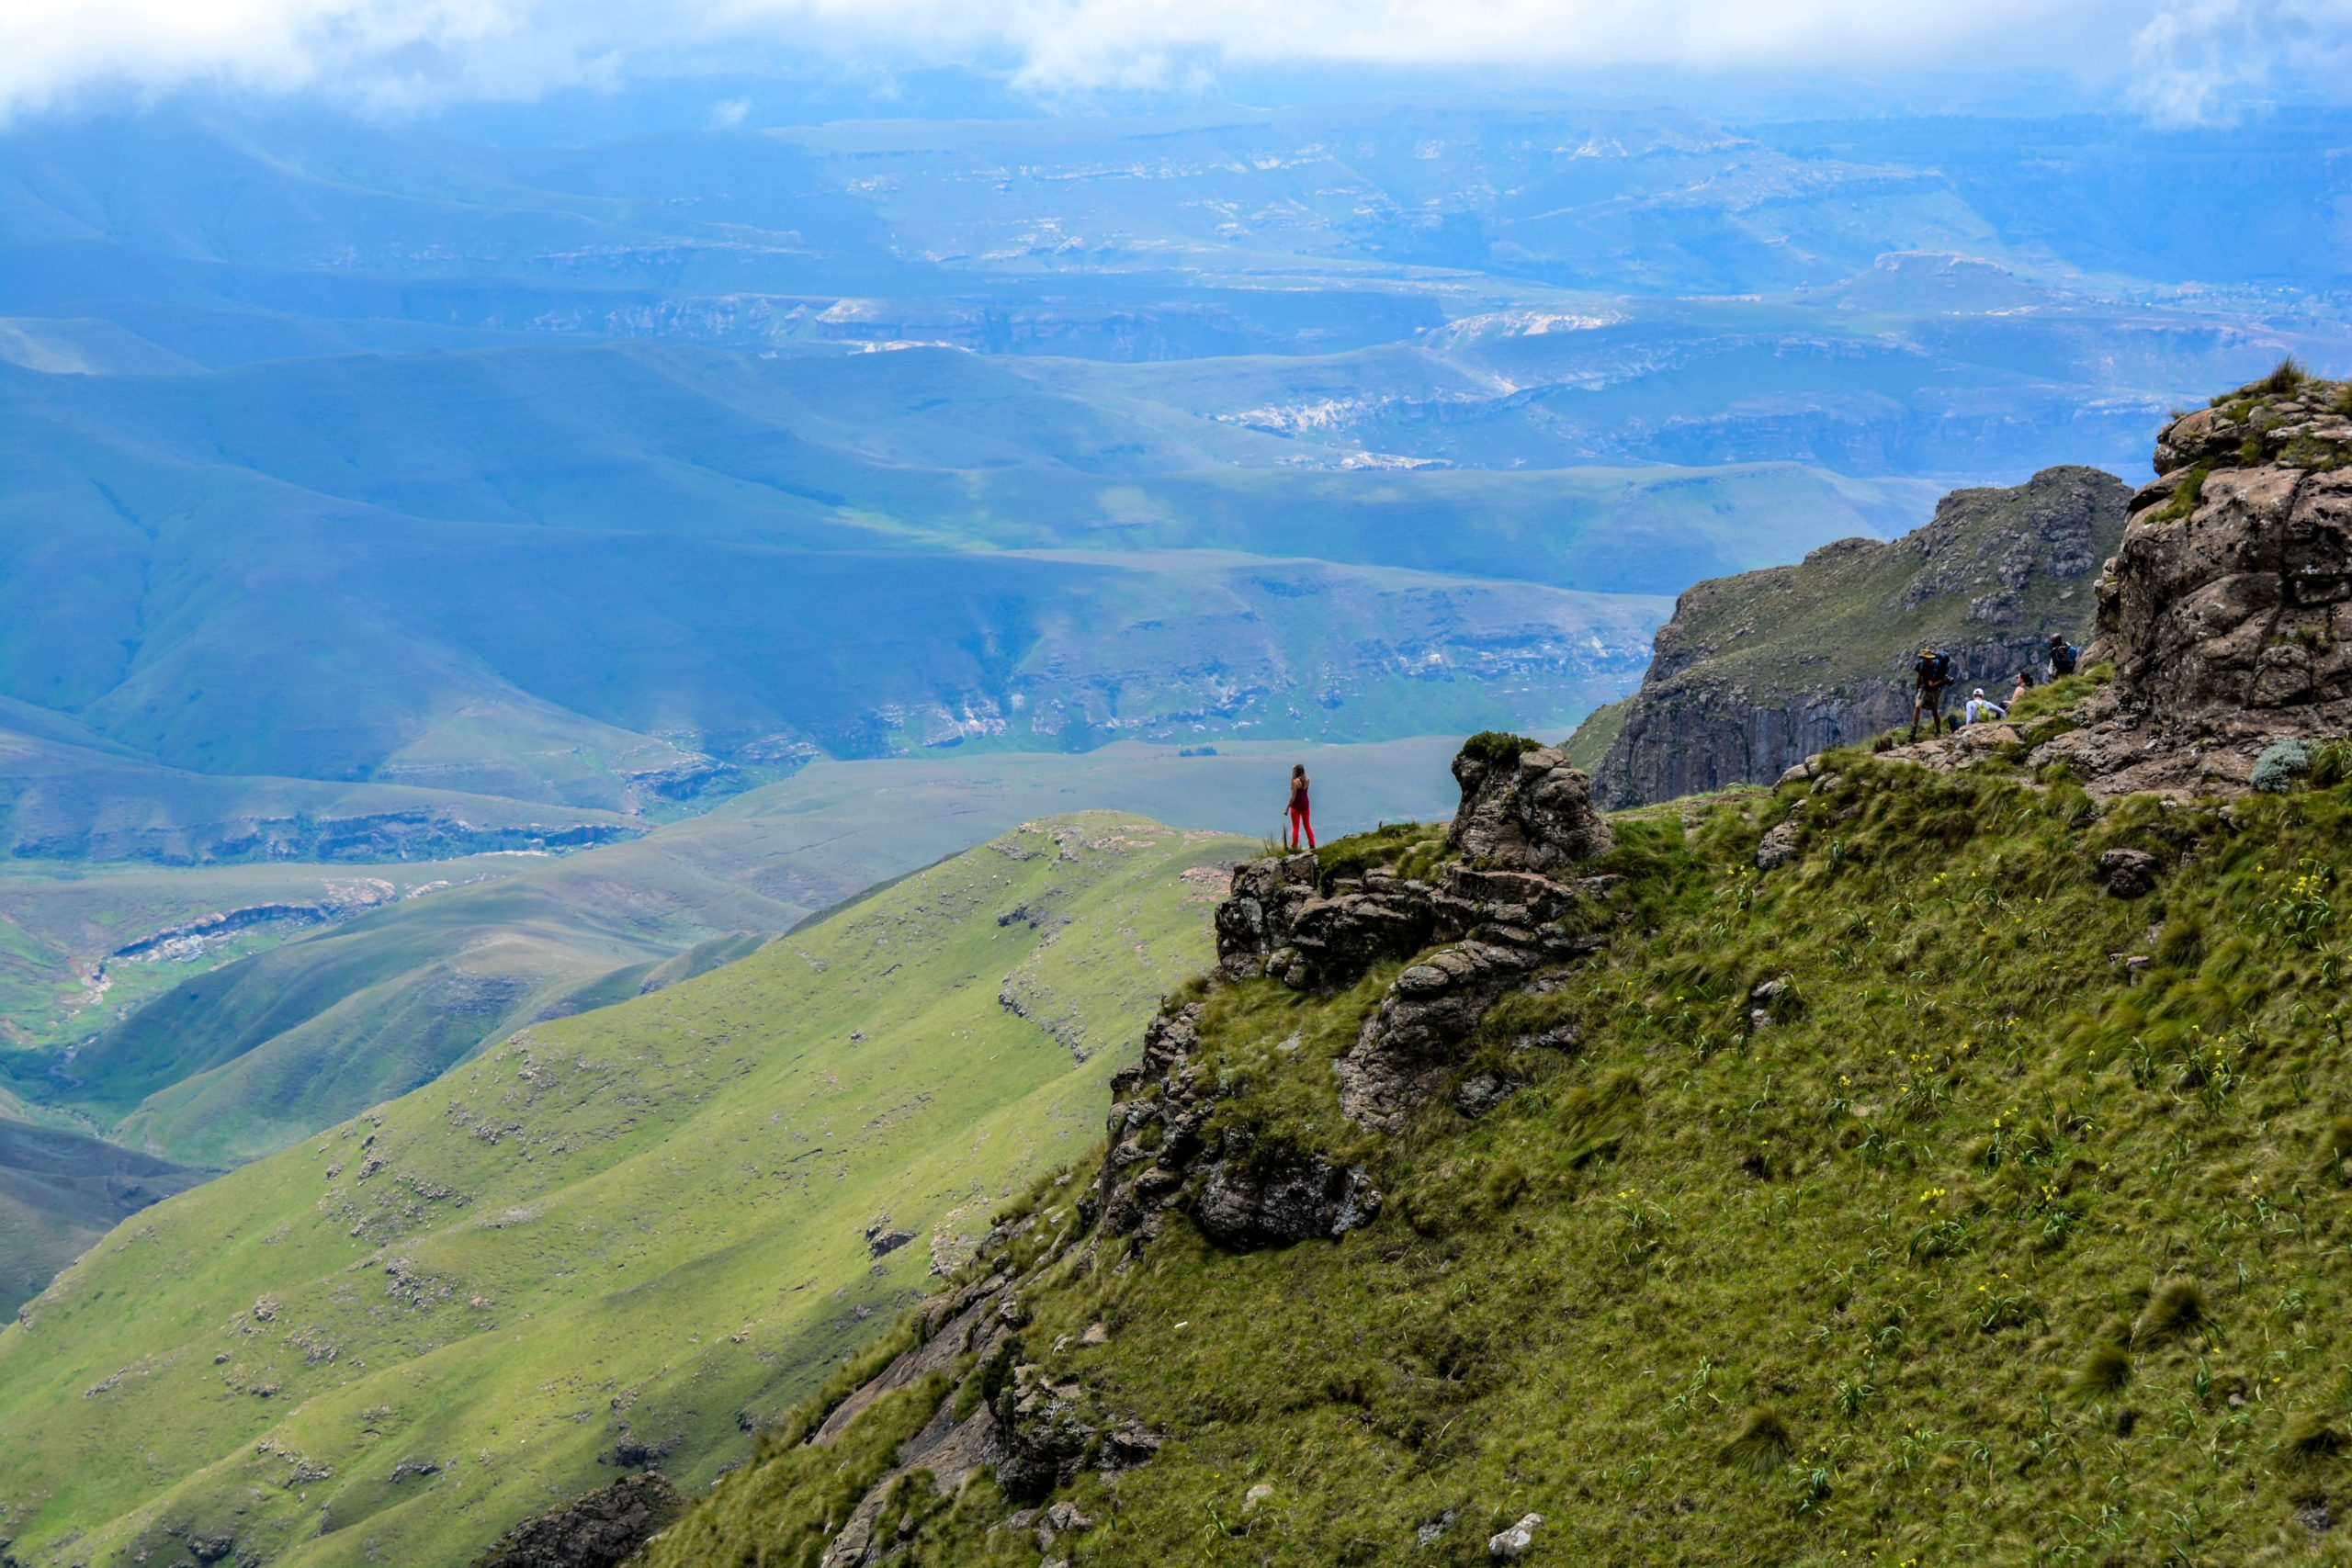 South Africa's Hiking Tips and Trails, Global Travel Alliance